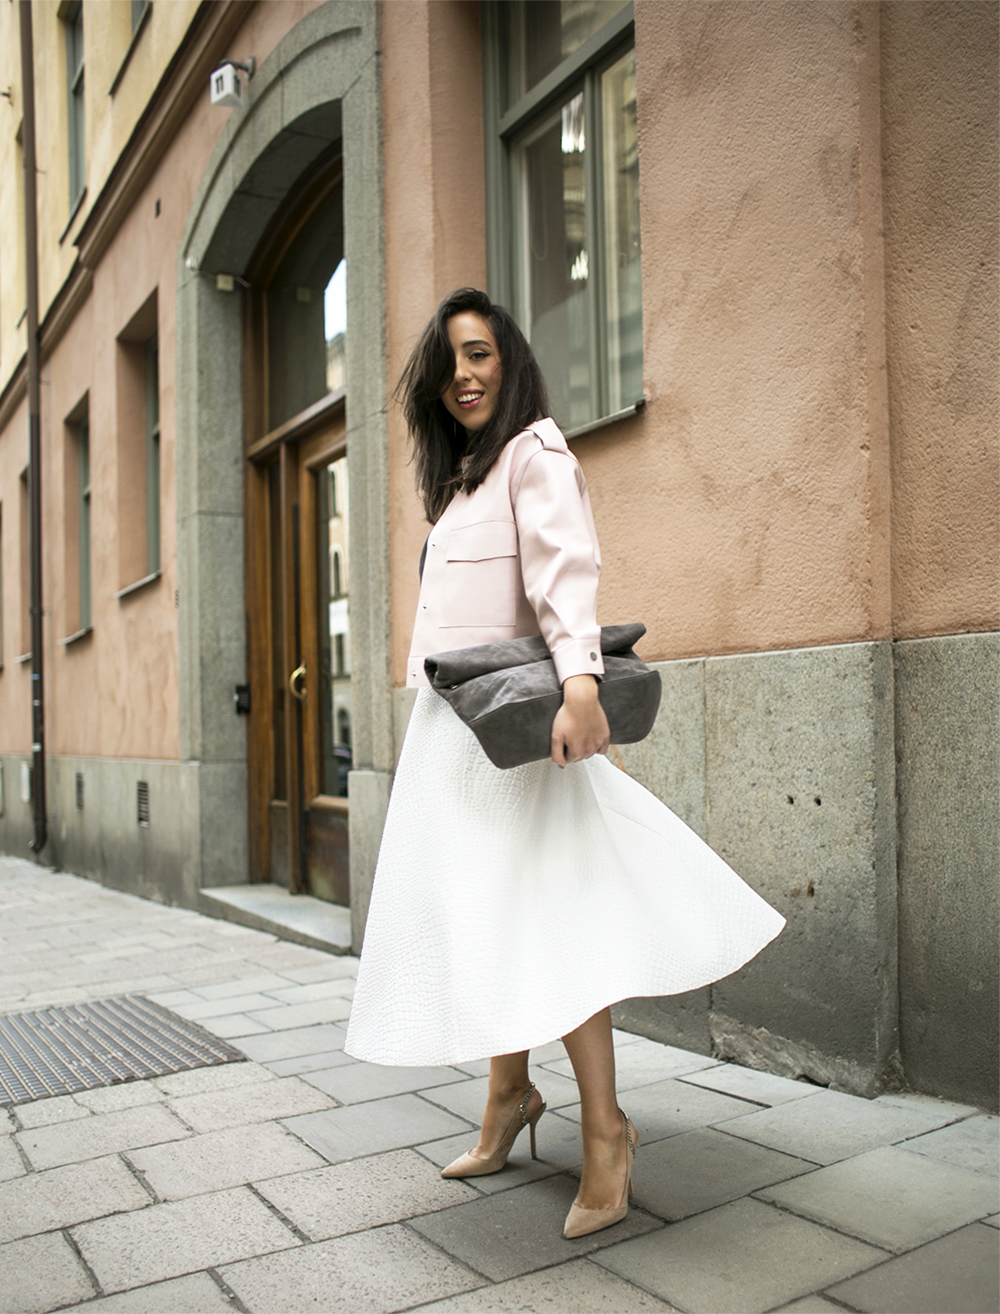 sania claus demina outit ginamyway 2015 gina tricot skirt jacket bag zara shoes_2